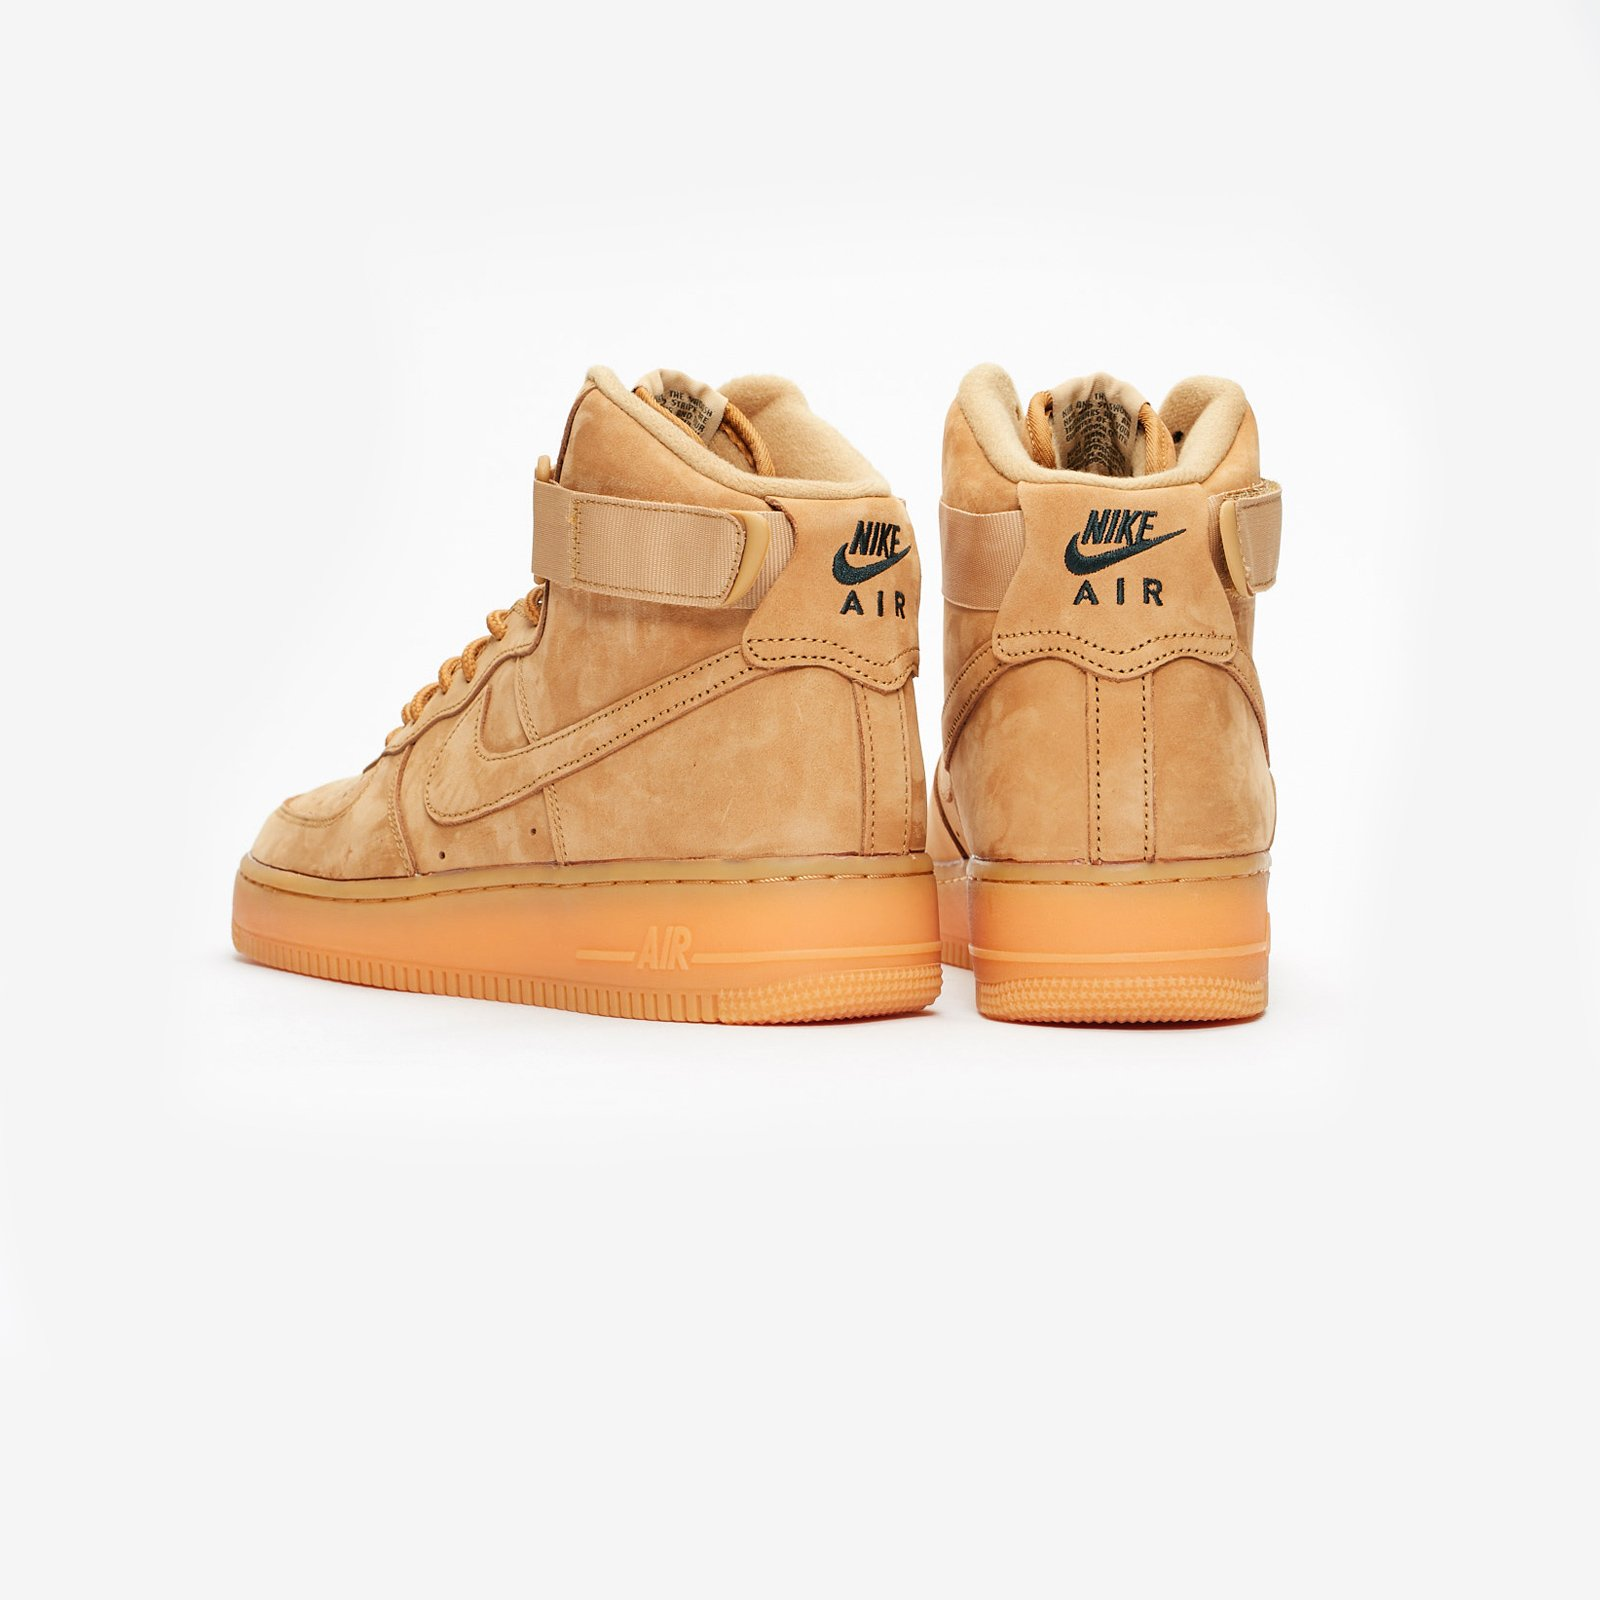 the best attitude 98c26 b463f Nike Air Force 1 High 07 LV8 WB - 882096-200 - Sneakersnstuff   sneakers    streetwear online since 1999